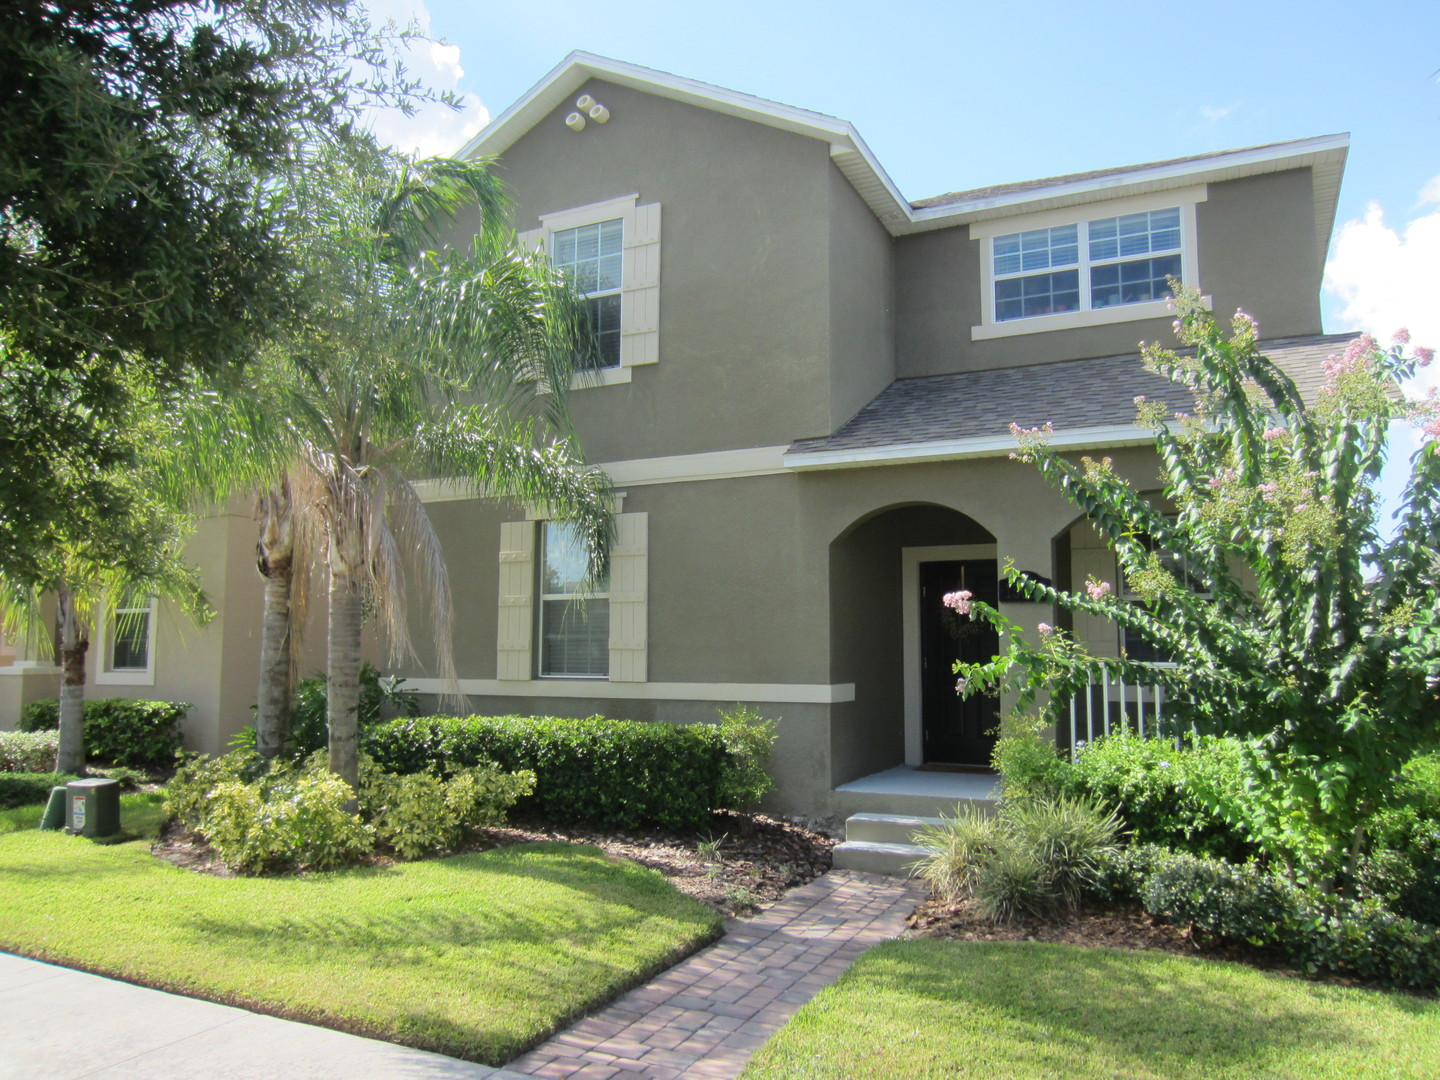 15639 signature dr winter garden fl 34787 rental listing